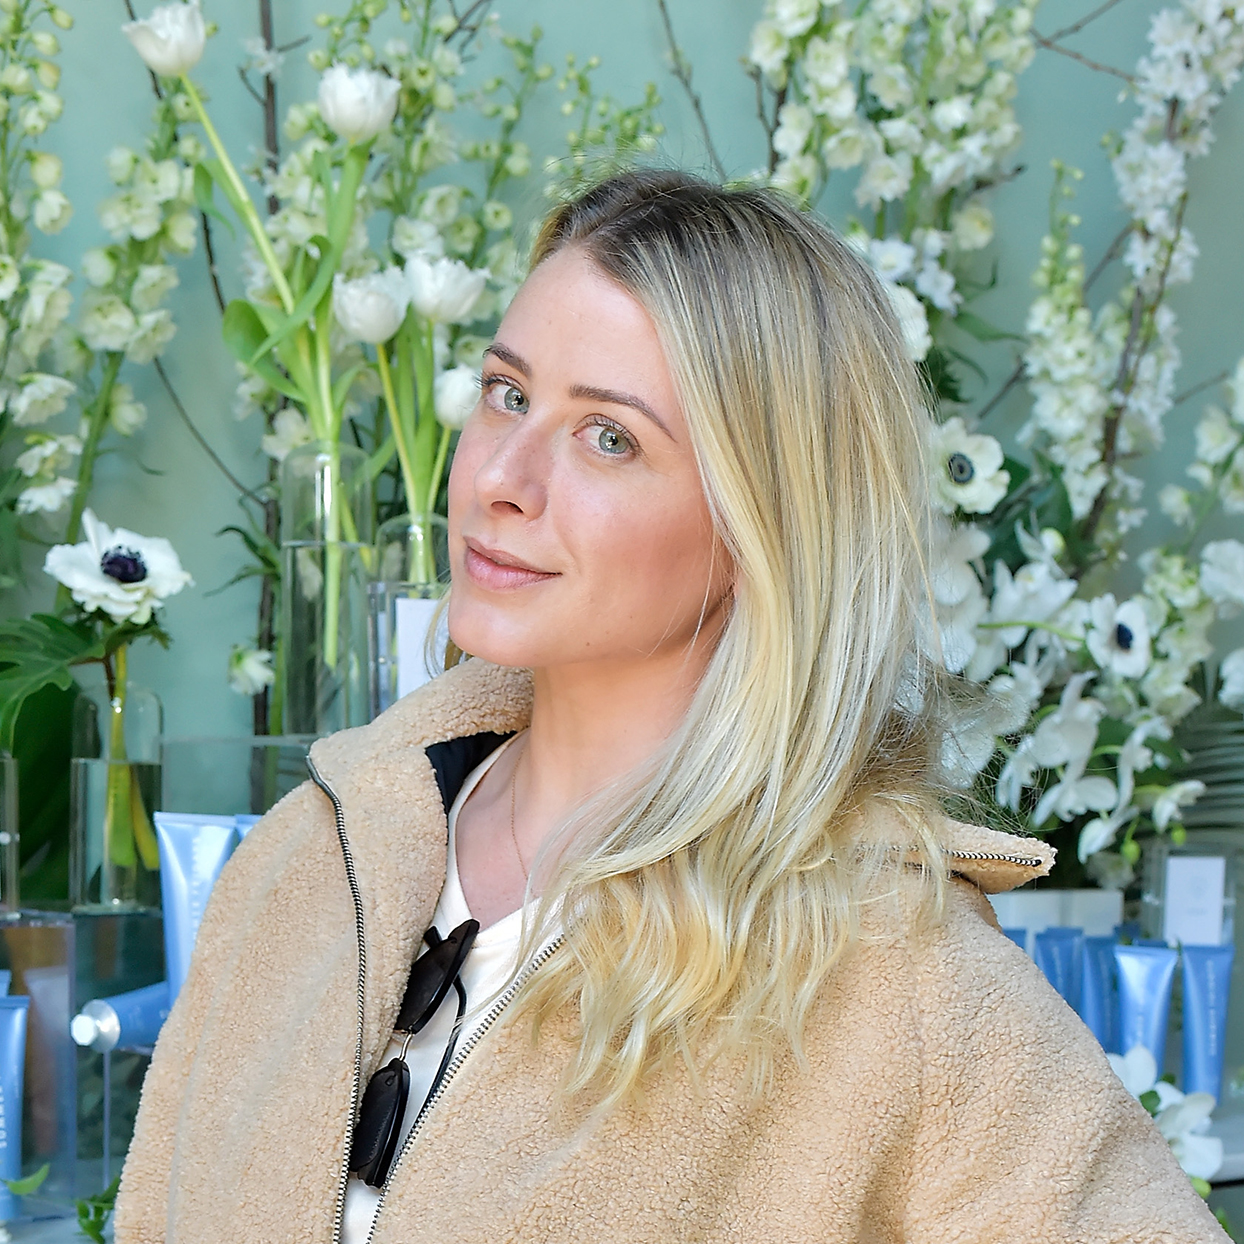 Lo Bosworth attends Summer Fridays Skincare Launch With Marianna Hewitt & Lauren Gores Ireland at Hayden on March 15, 2018 in Culver City, California.